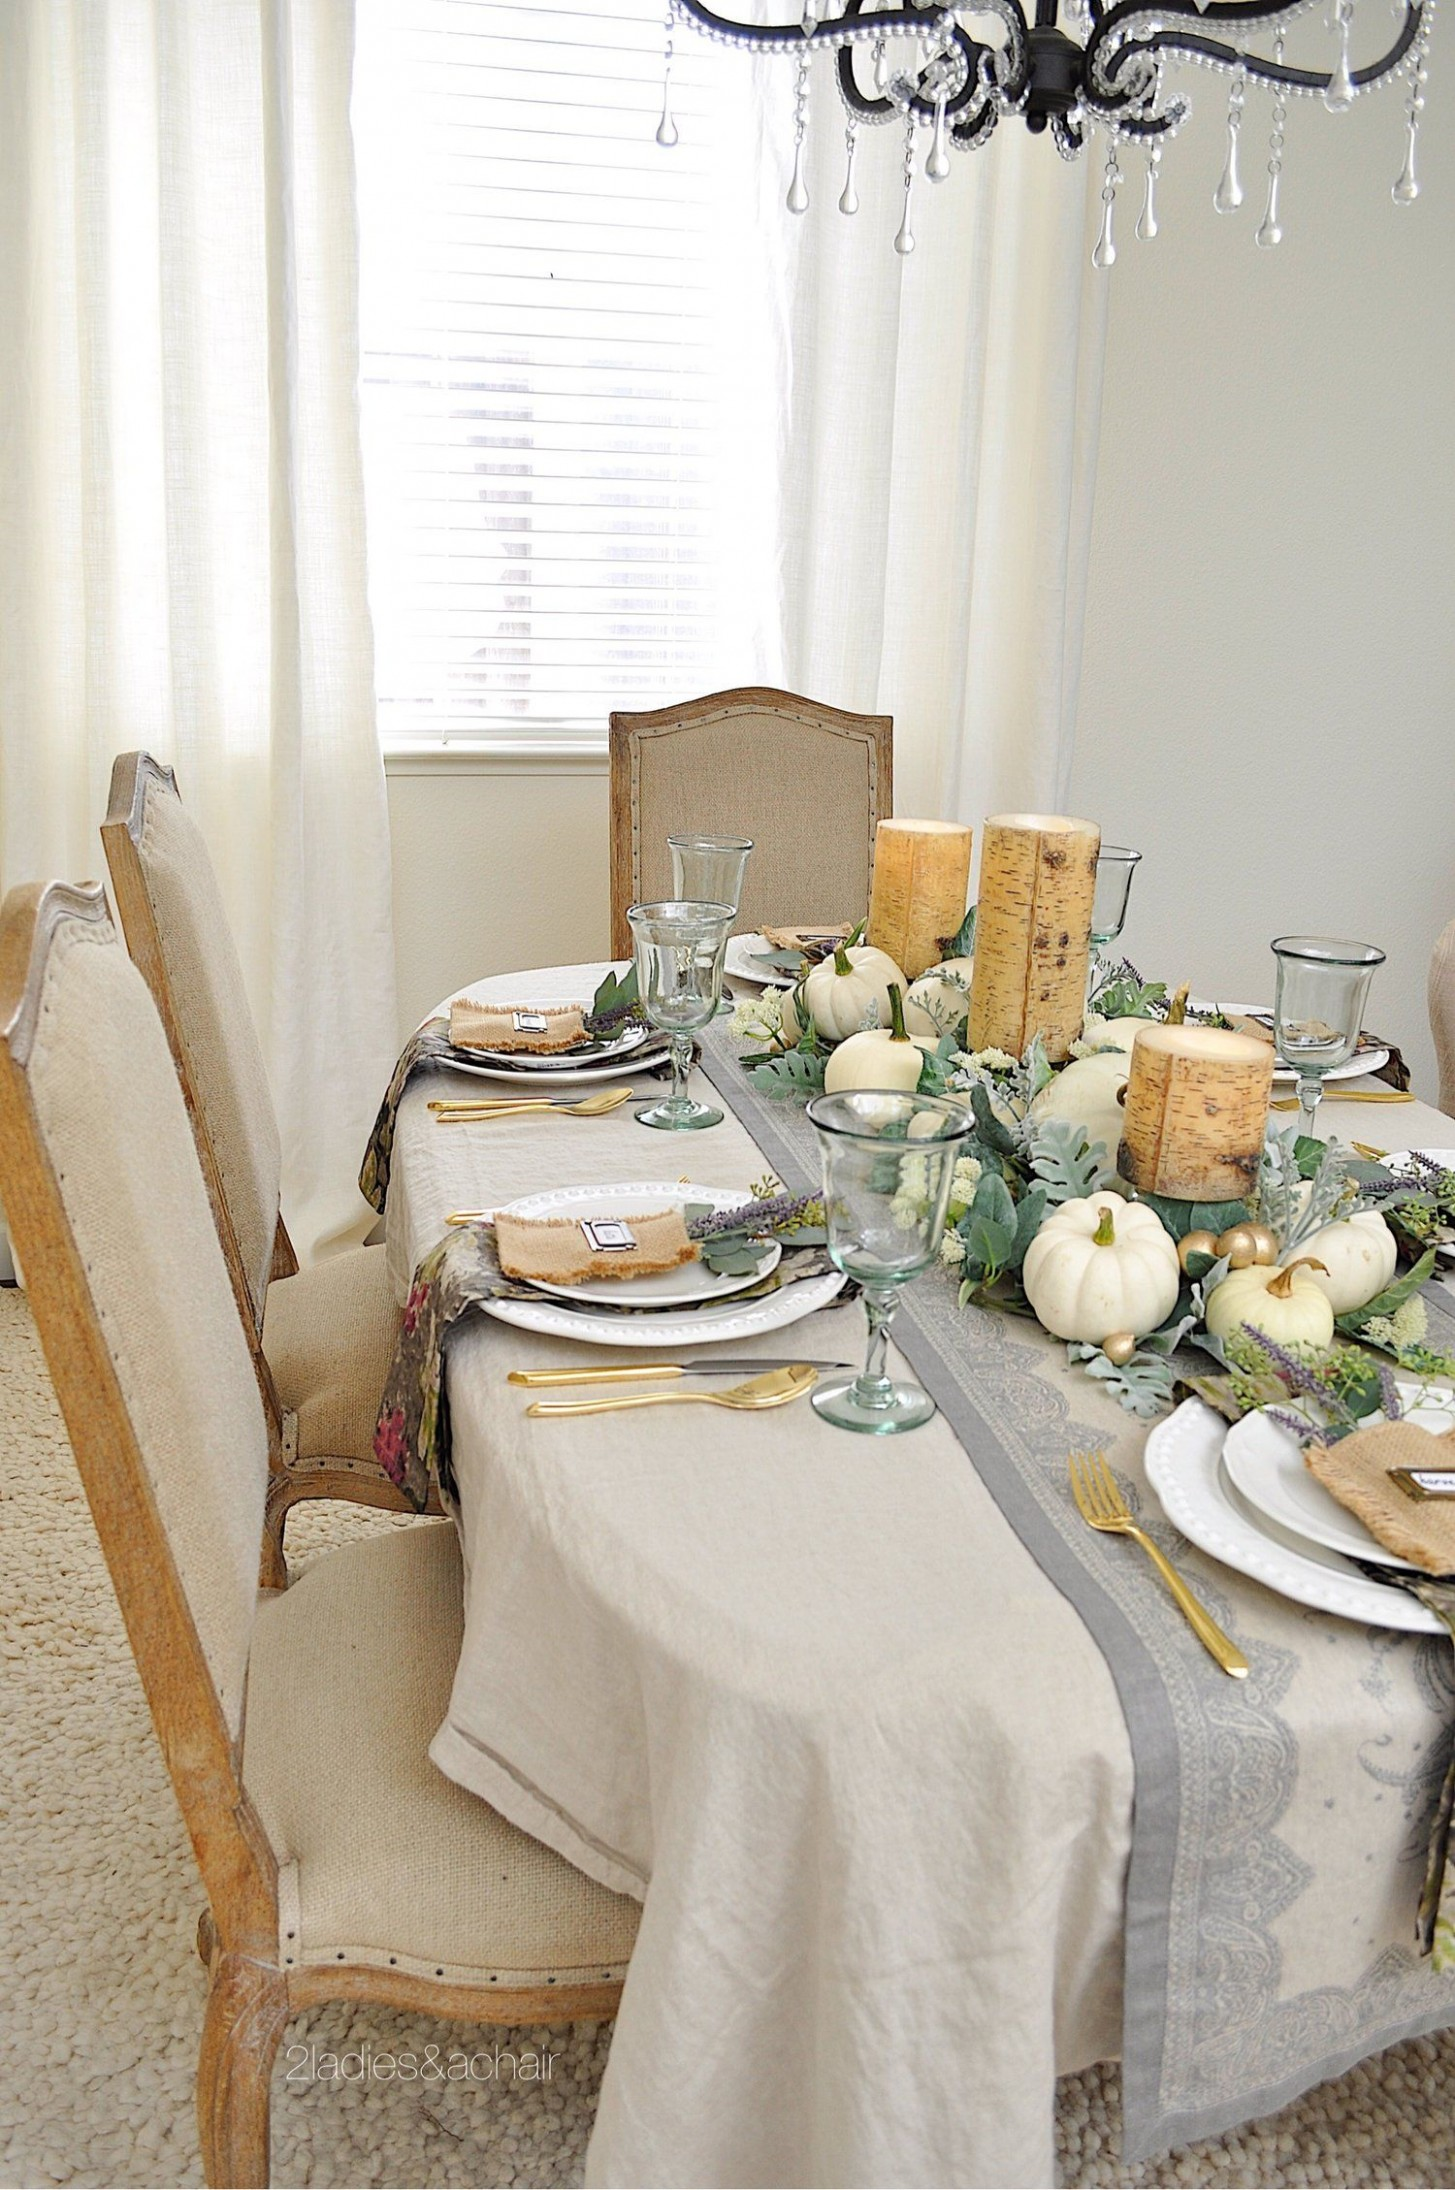 A Simple Beautiful Way to Decorate Your Dining Table for Fall — 9  - Decorating Your Dining Room Ideas